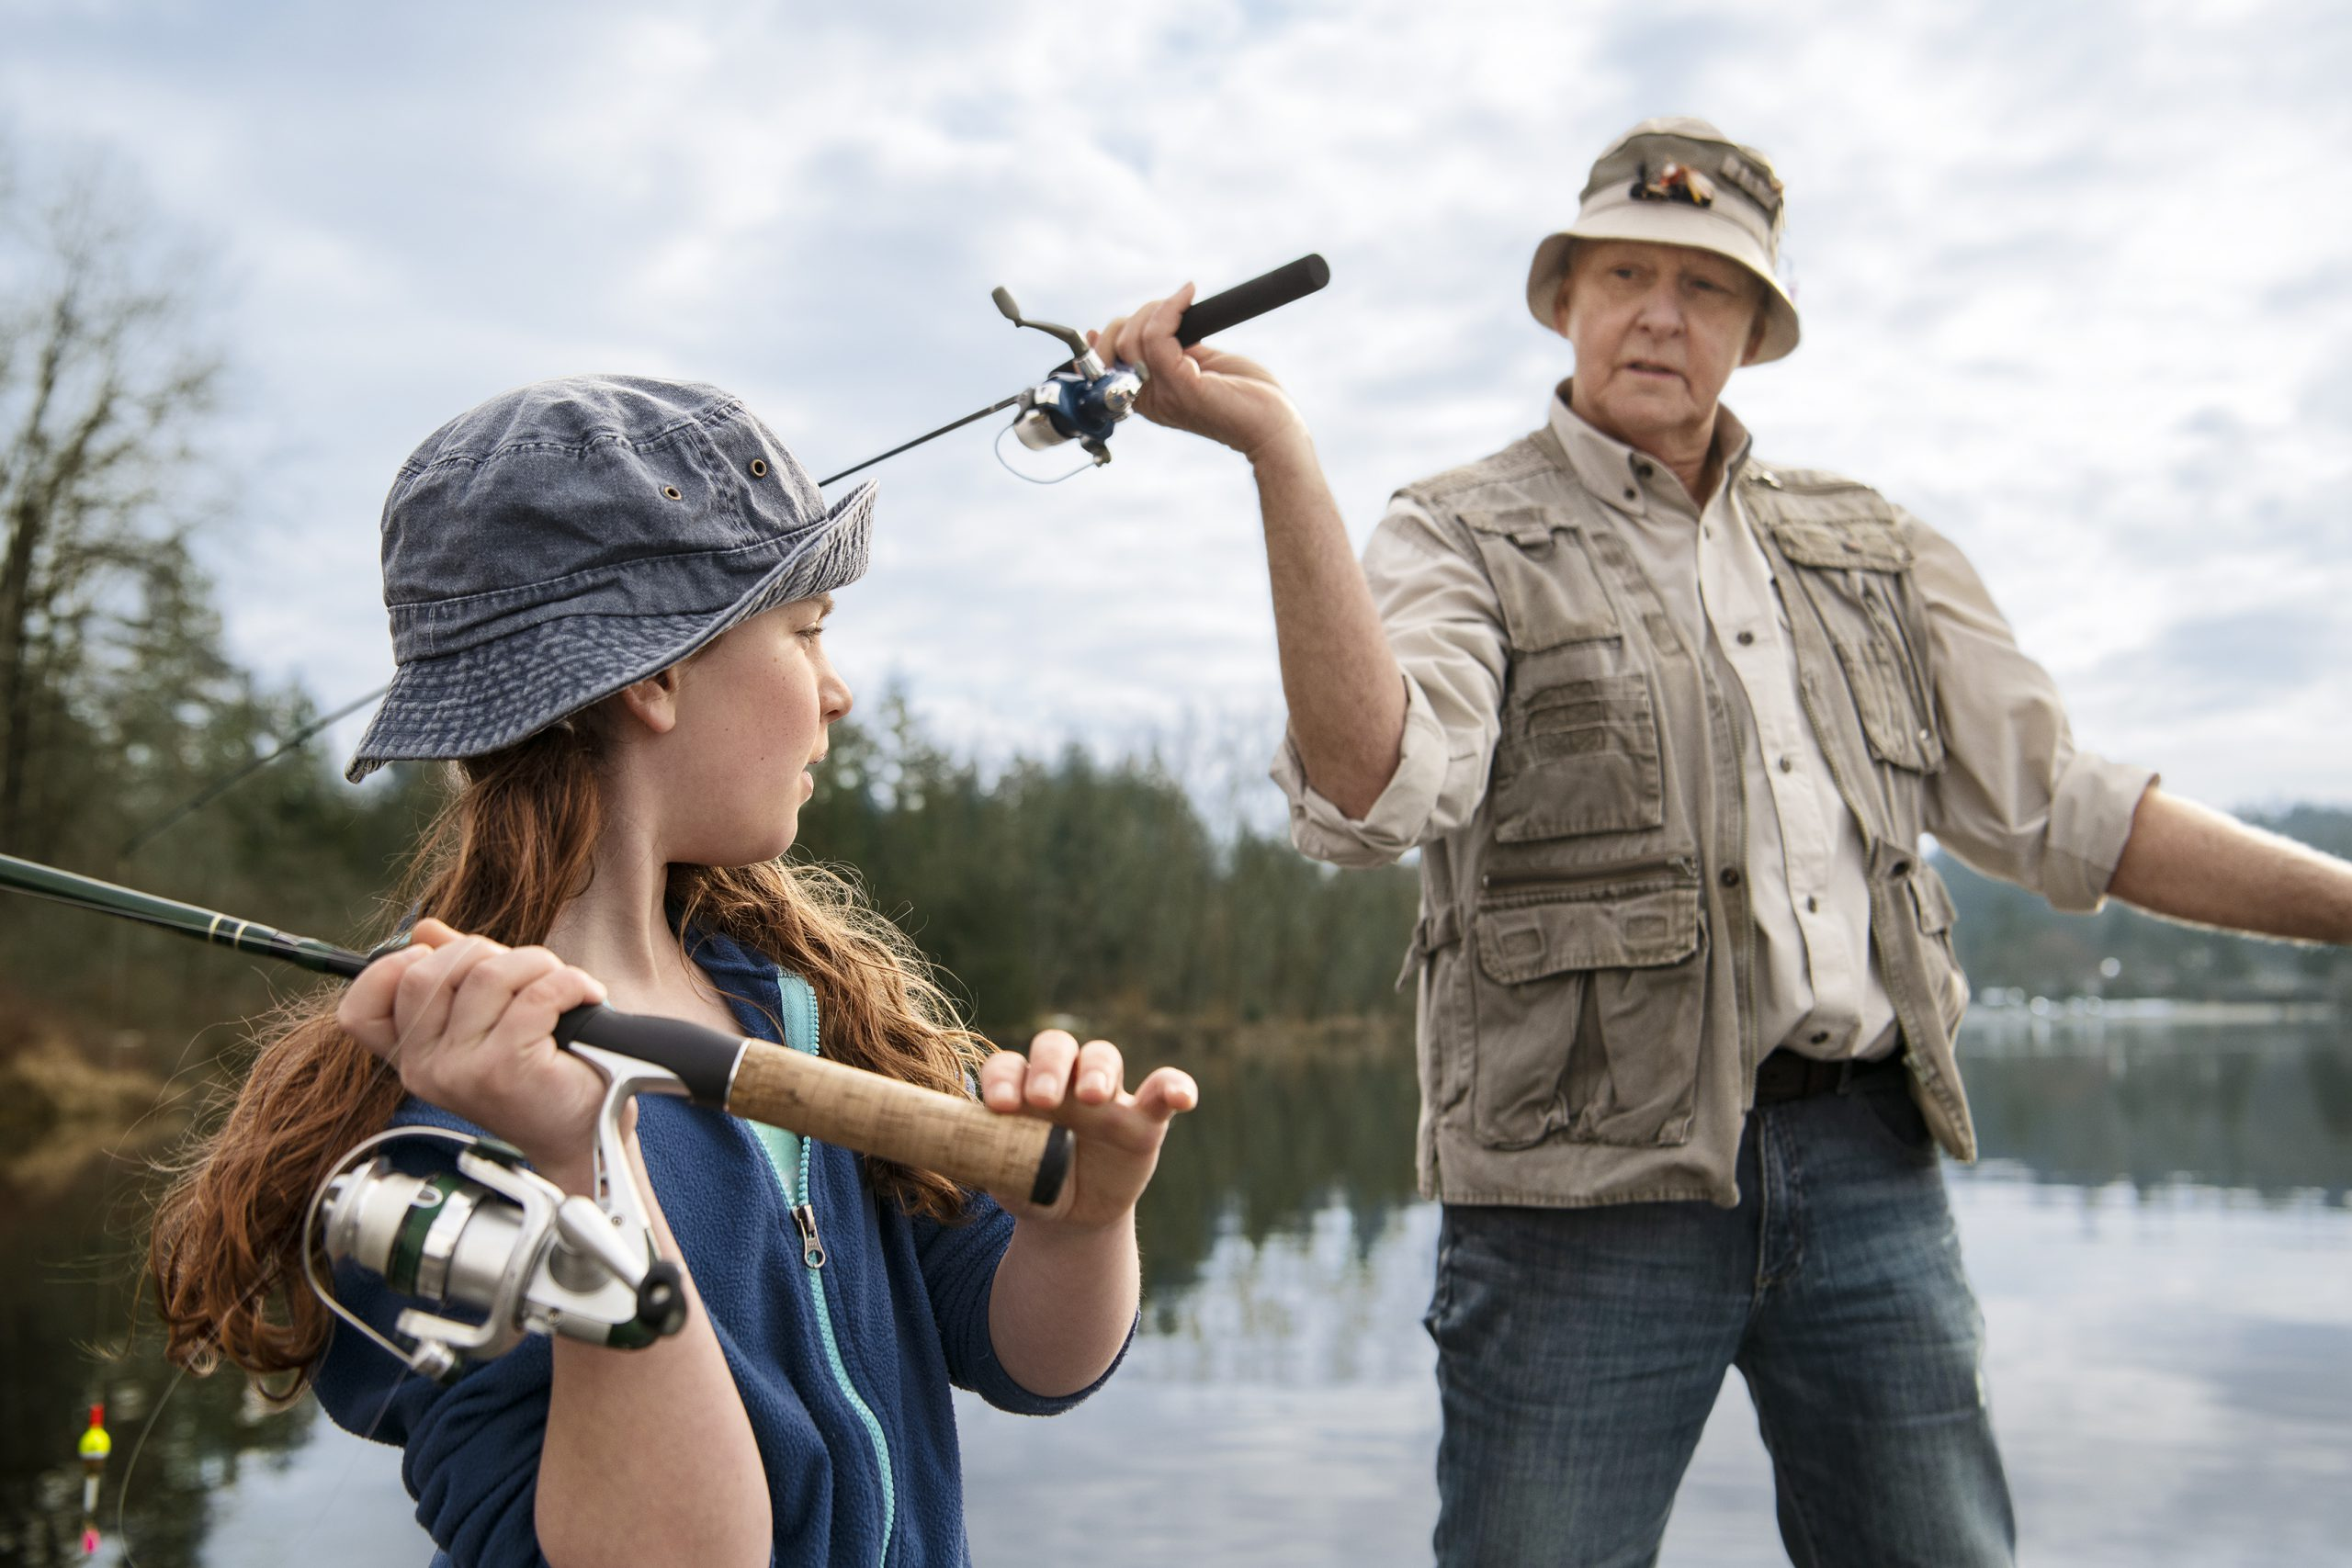 A girl and an older man casting their fishing rods on a lake